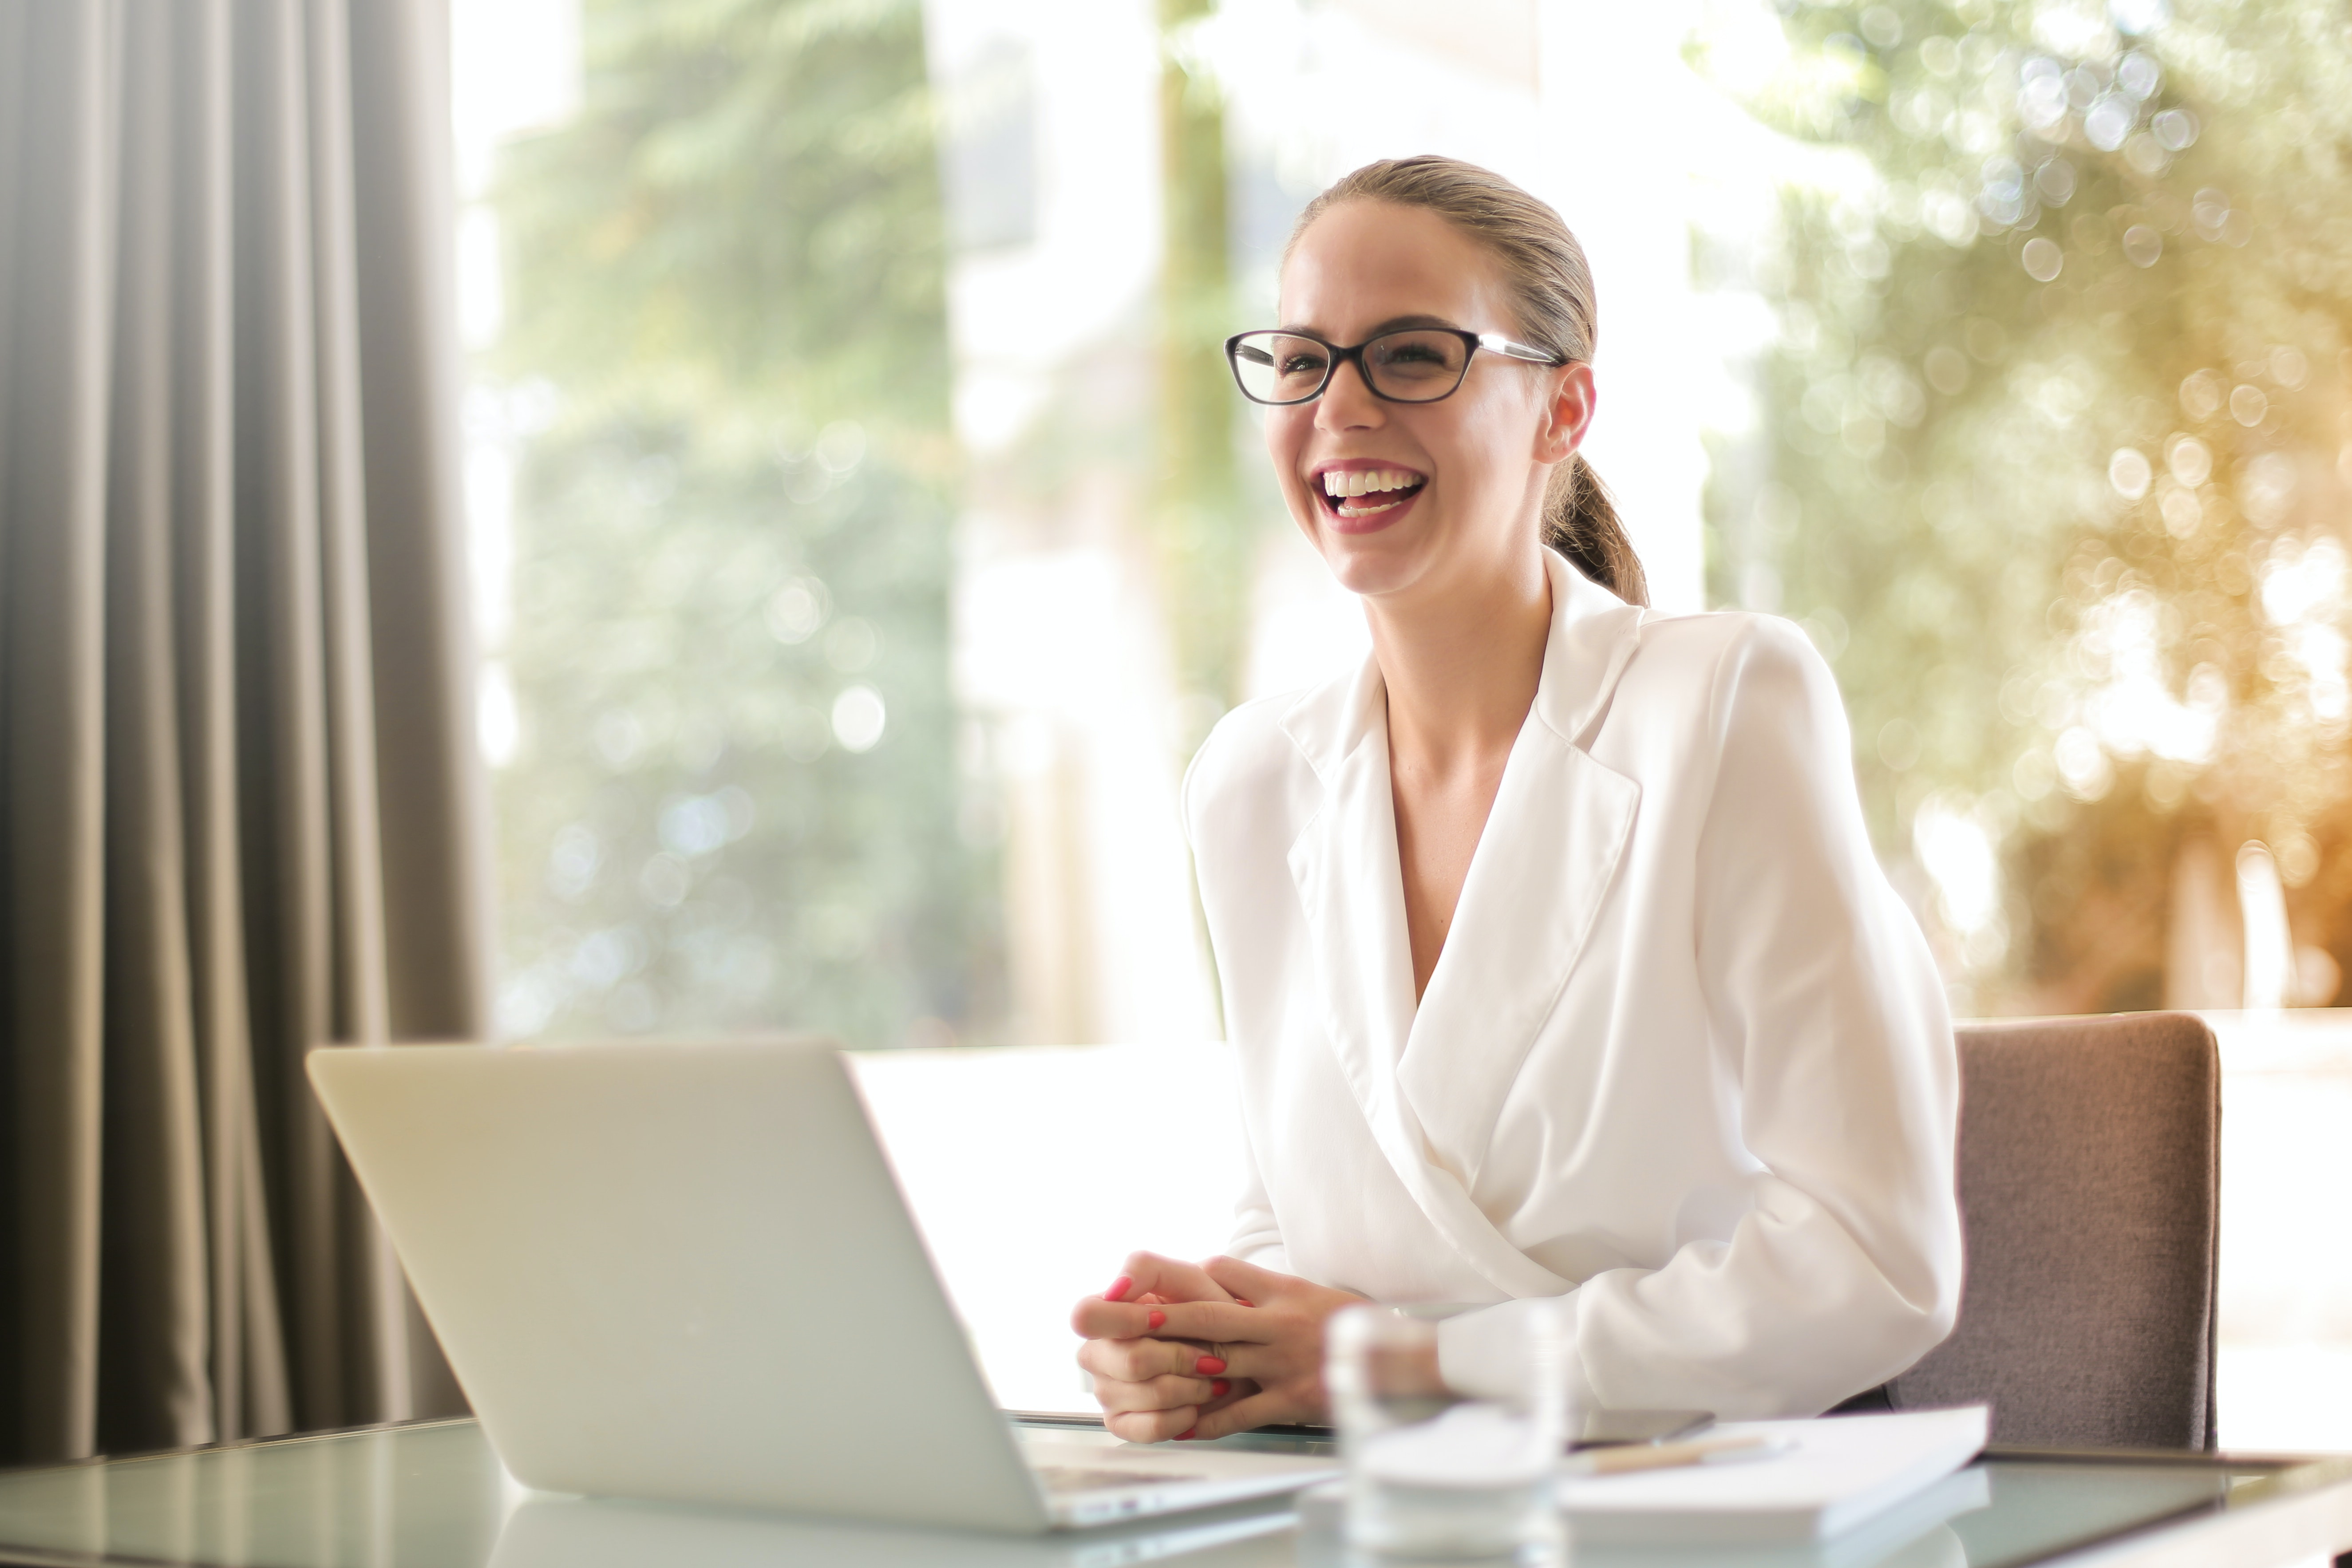 6 signs you've got the most effective dental office manager